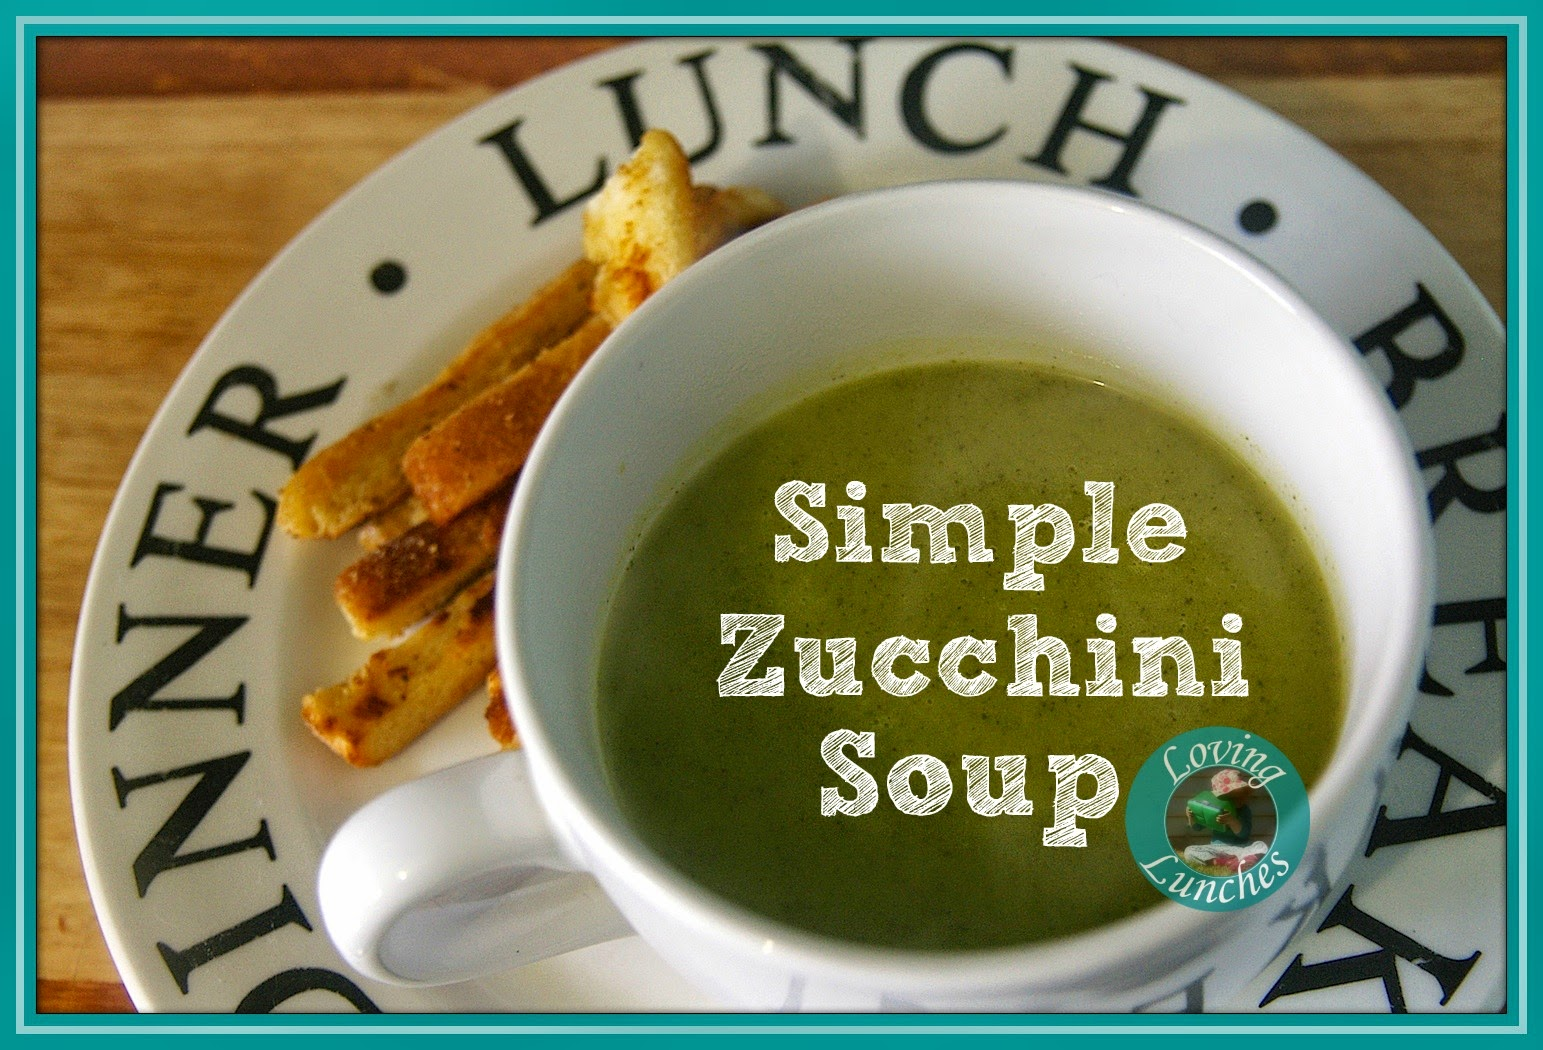 Loving Lunches: Simple Zucchini Soup